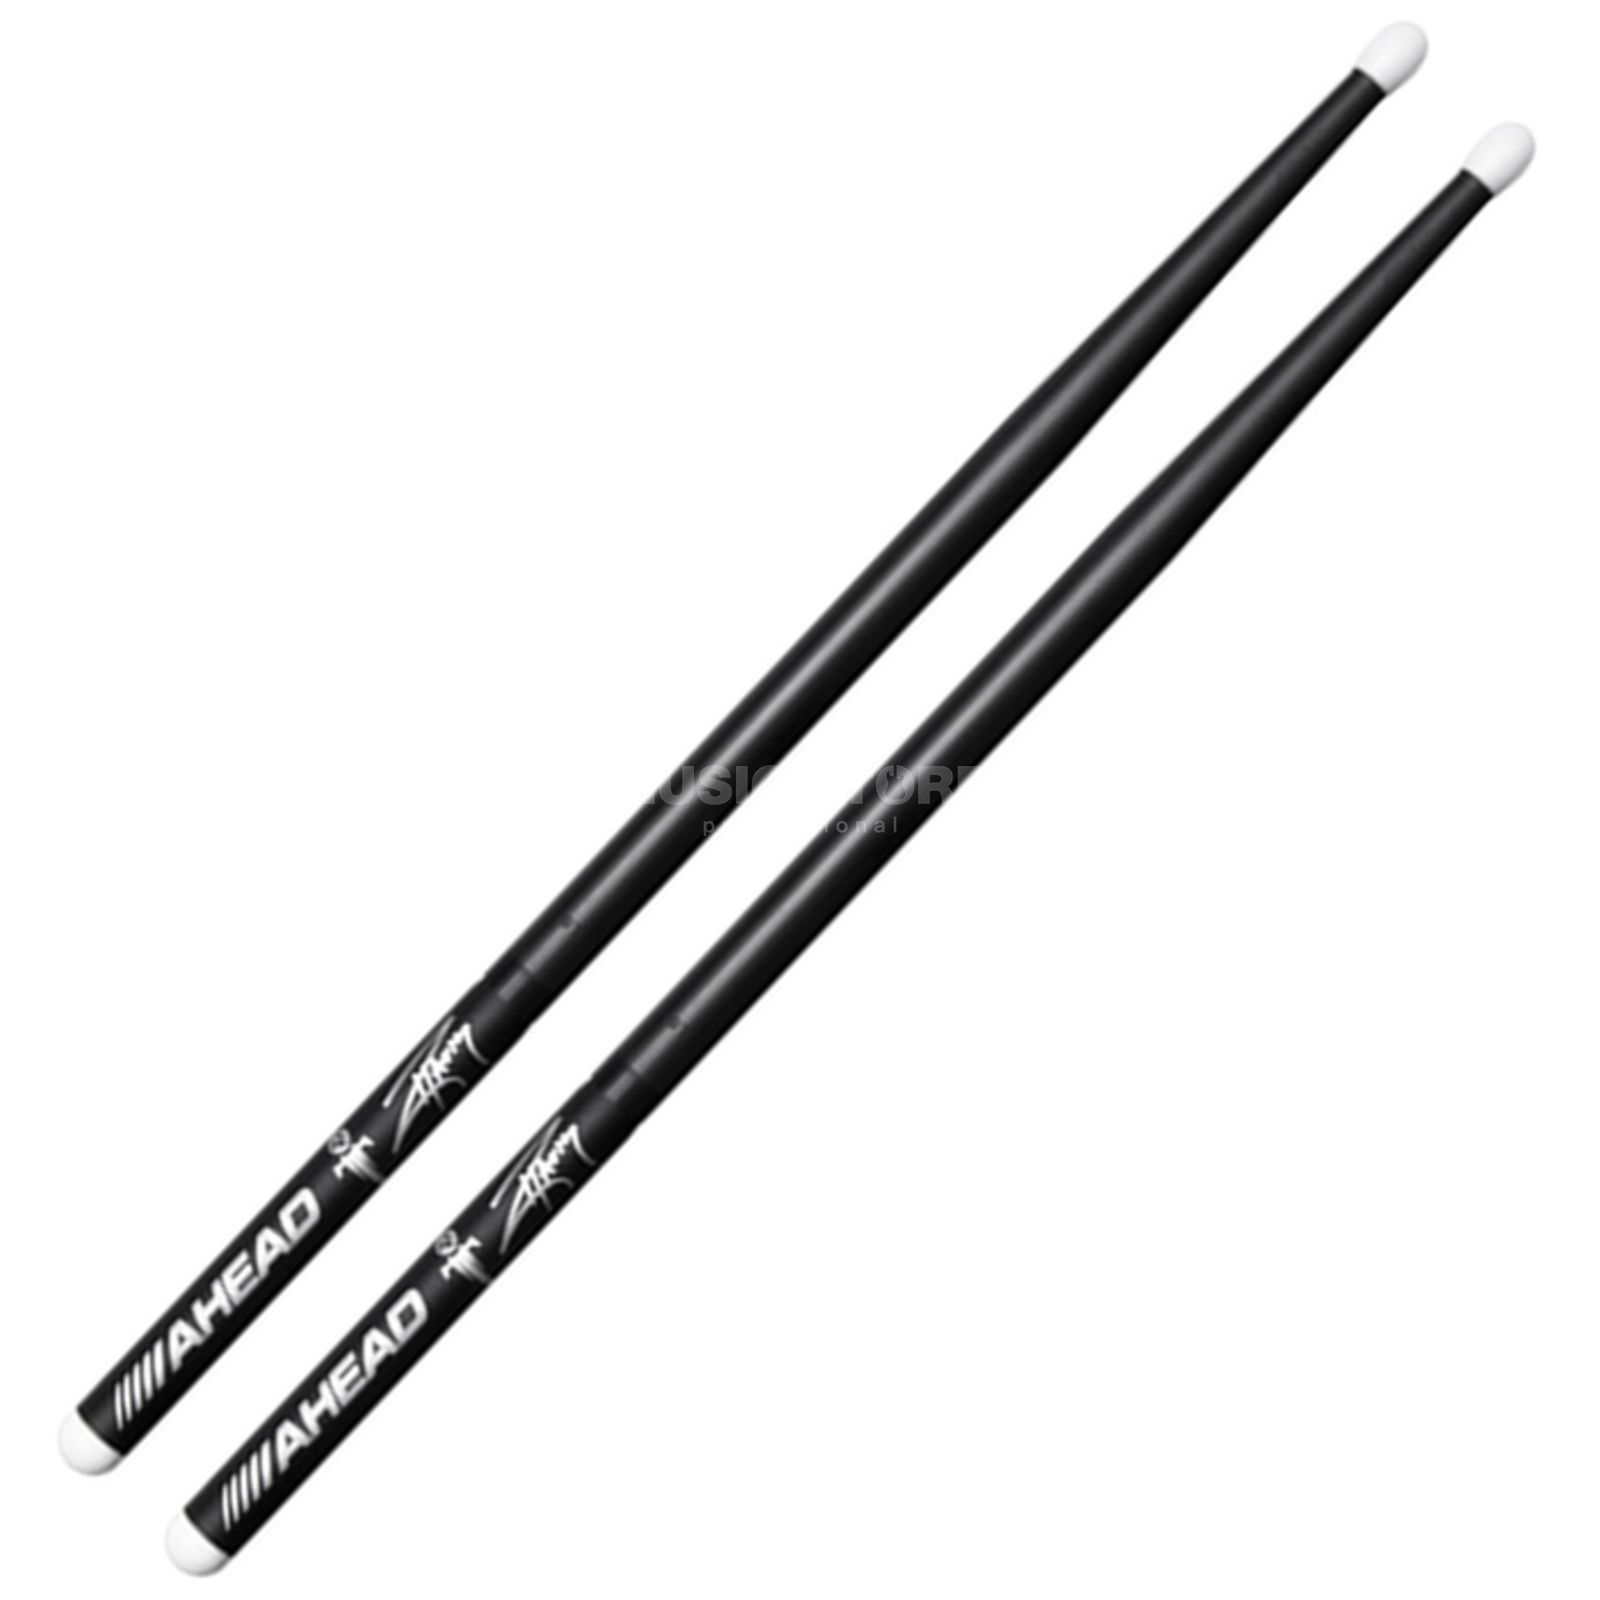 Ahead Sticks TSR Travis Smith Alu-Sticks Medium Taper Produktbillede